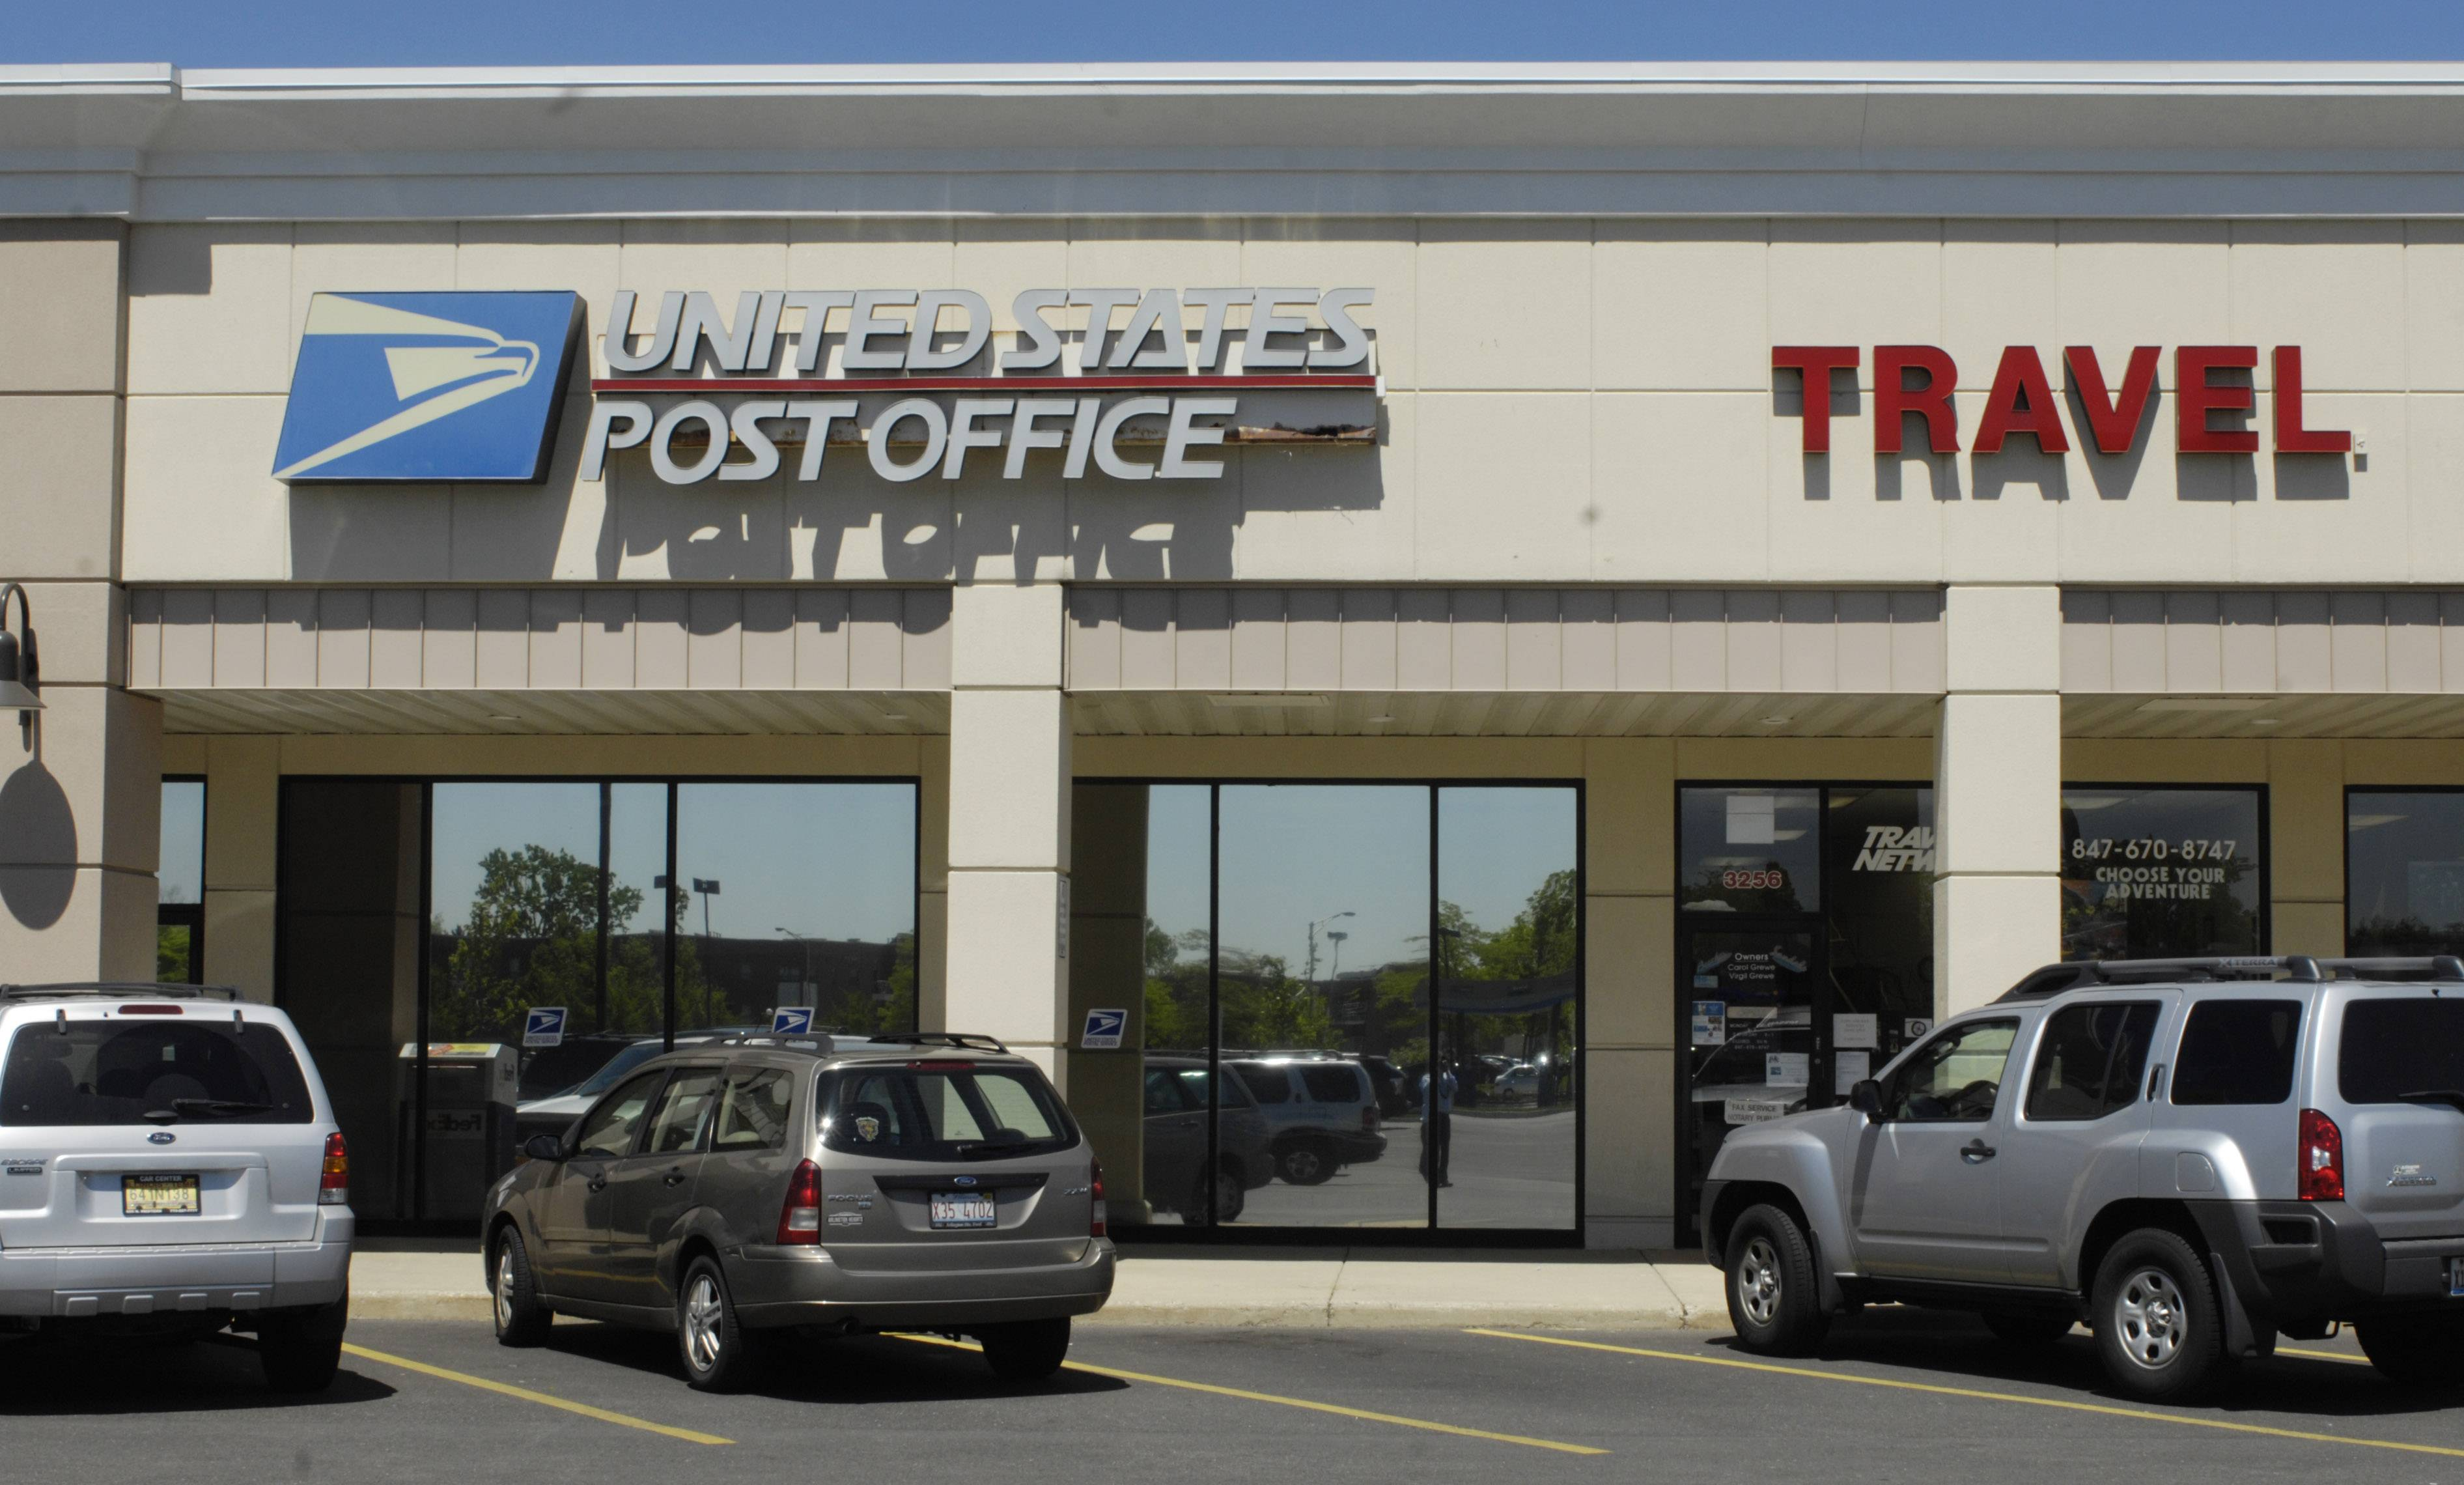 A Rolling Meadows post office branch closed in 2012 because of a leasing dispute between the postal service and shopping center owner. Local officials are lobbying federal officials to try to get the post office to come back.